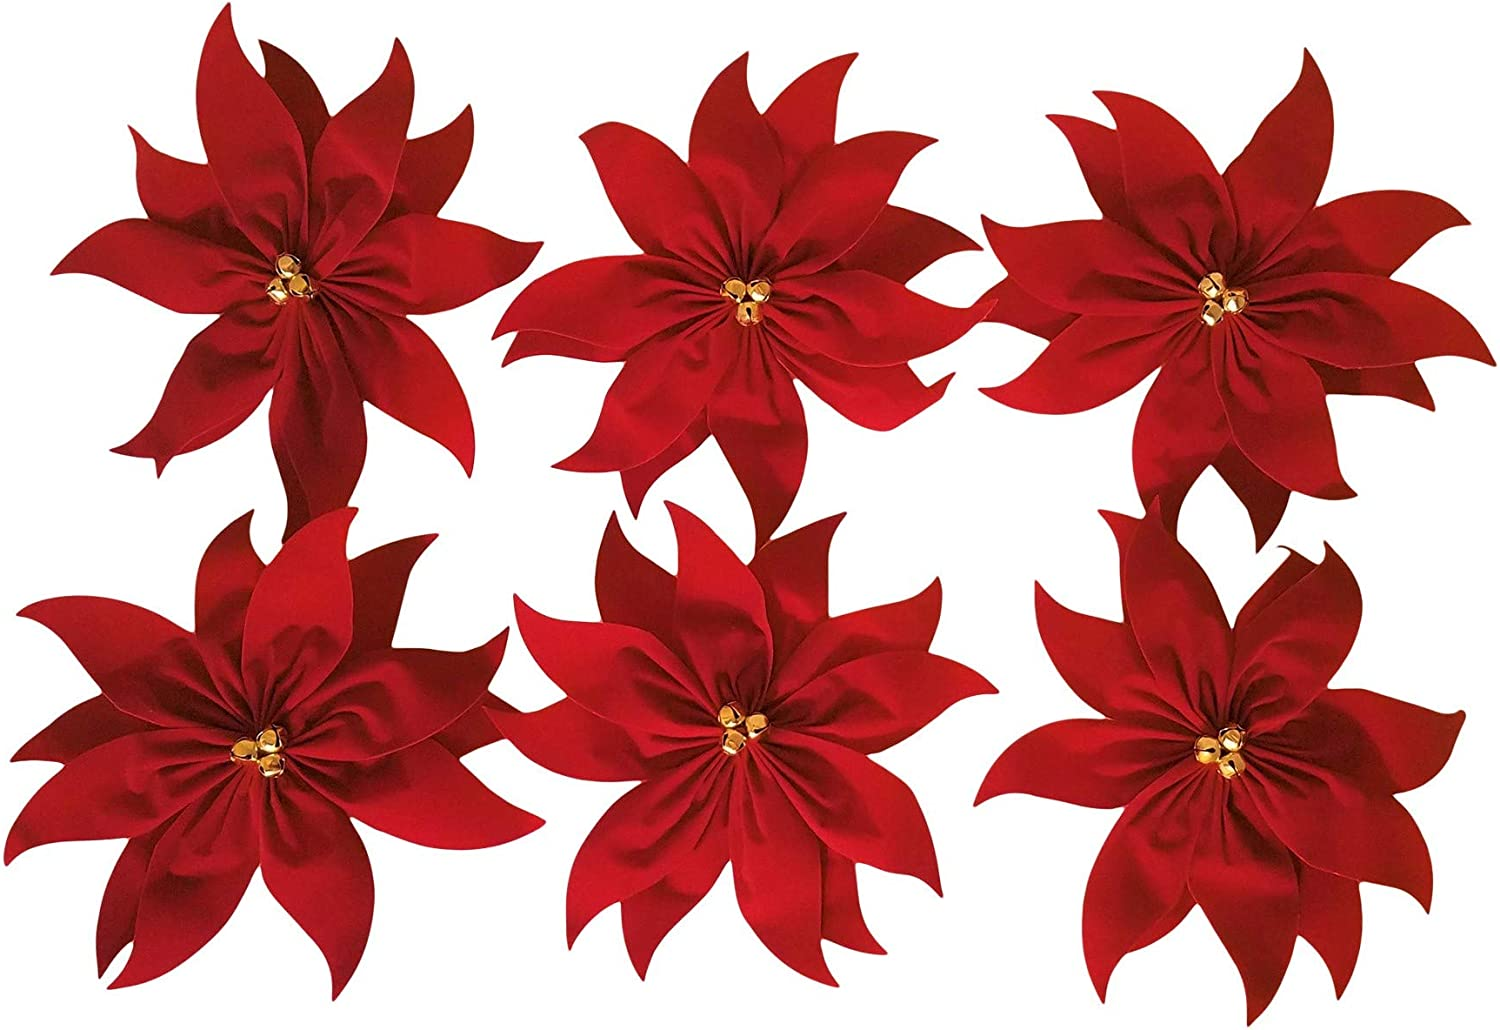 Red Velvet Poinsettia Christmas Bows with Bells - 6 Count Size 9.5 Inches x 9.5 Inches Holiday Ribbons Bows for Decorations